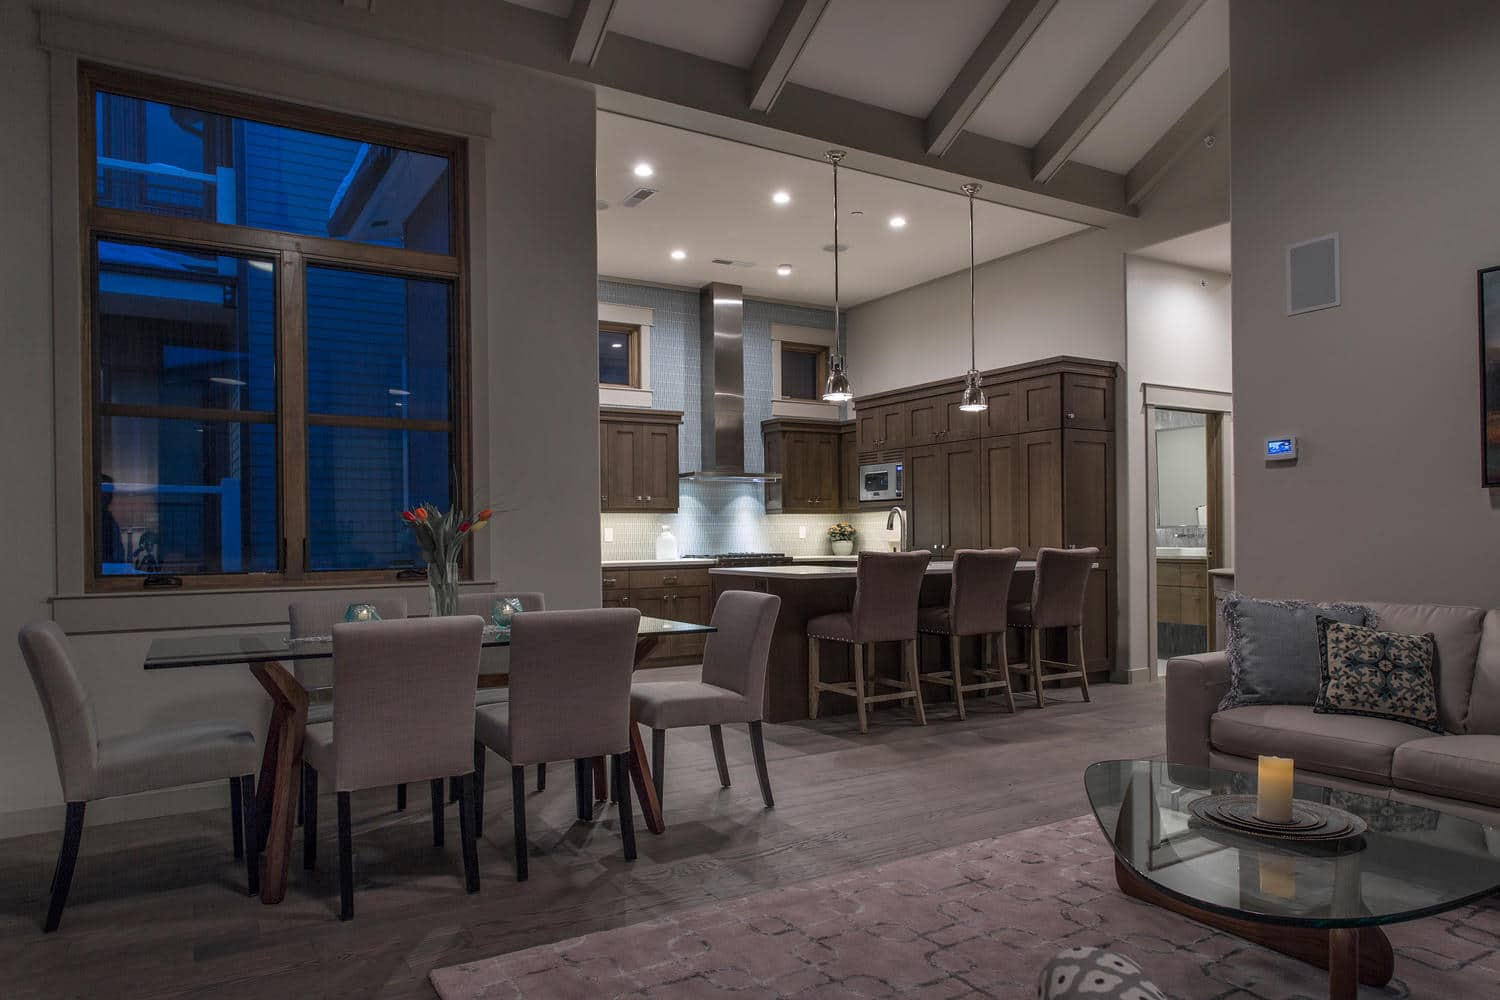 Norfolk Ave 2, kitchen and dining area - architectural design by Elliott Workgroup